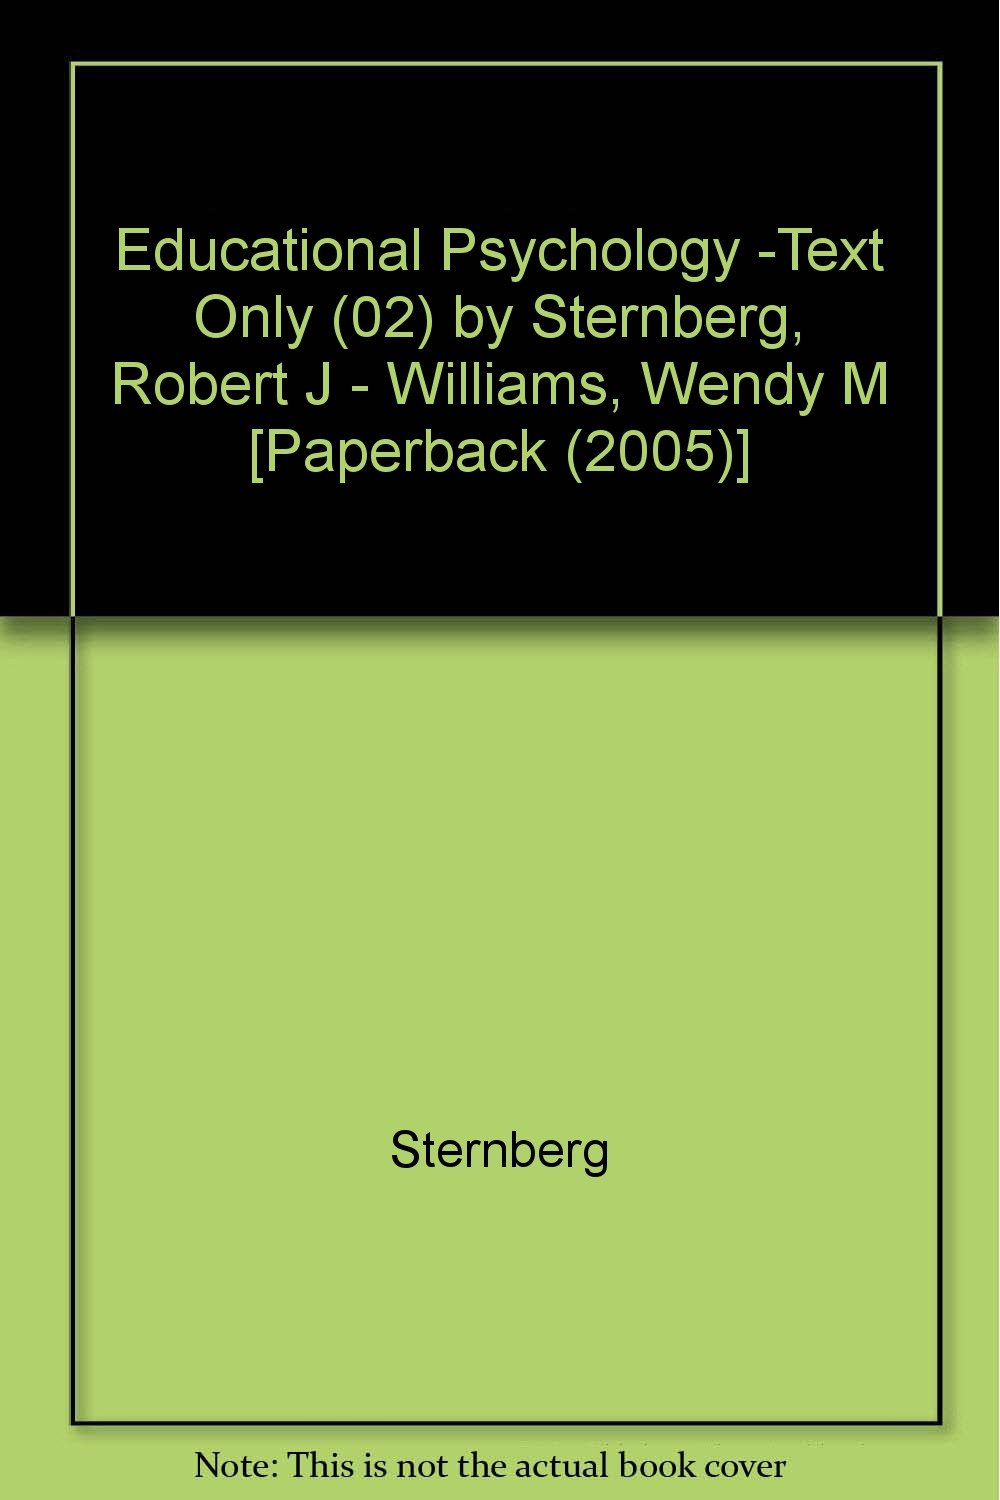 Download Educational Psychology -Text Only (02) by Sternberg, Robert J - Williams, Wendy M [Paperback (2005)] pdf epub